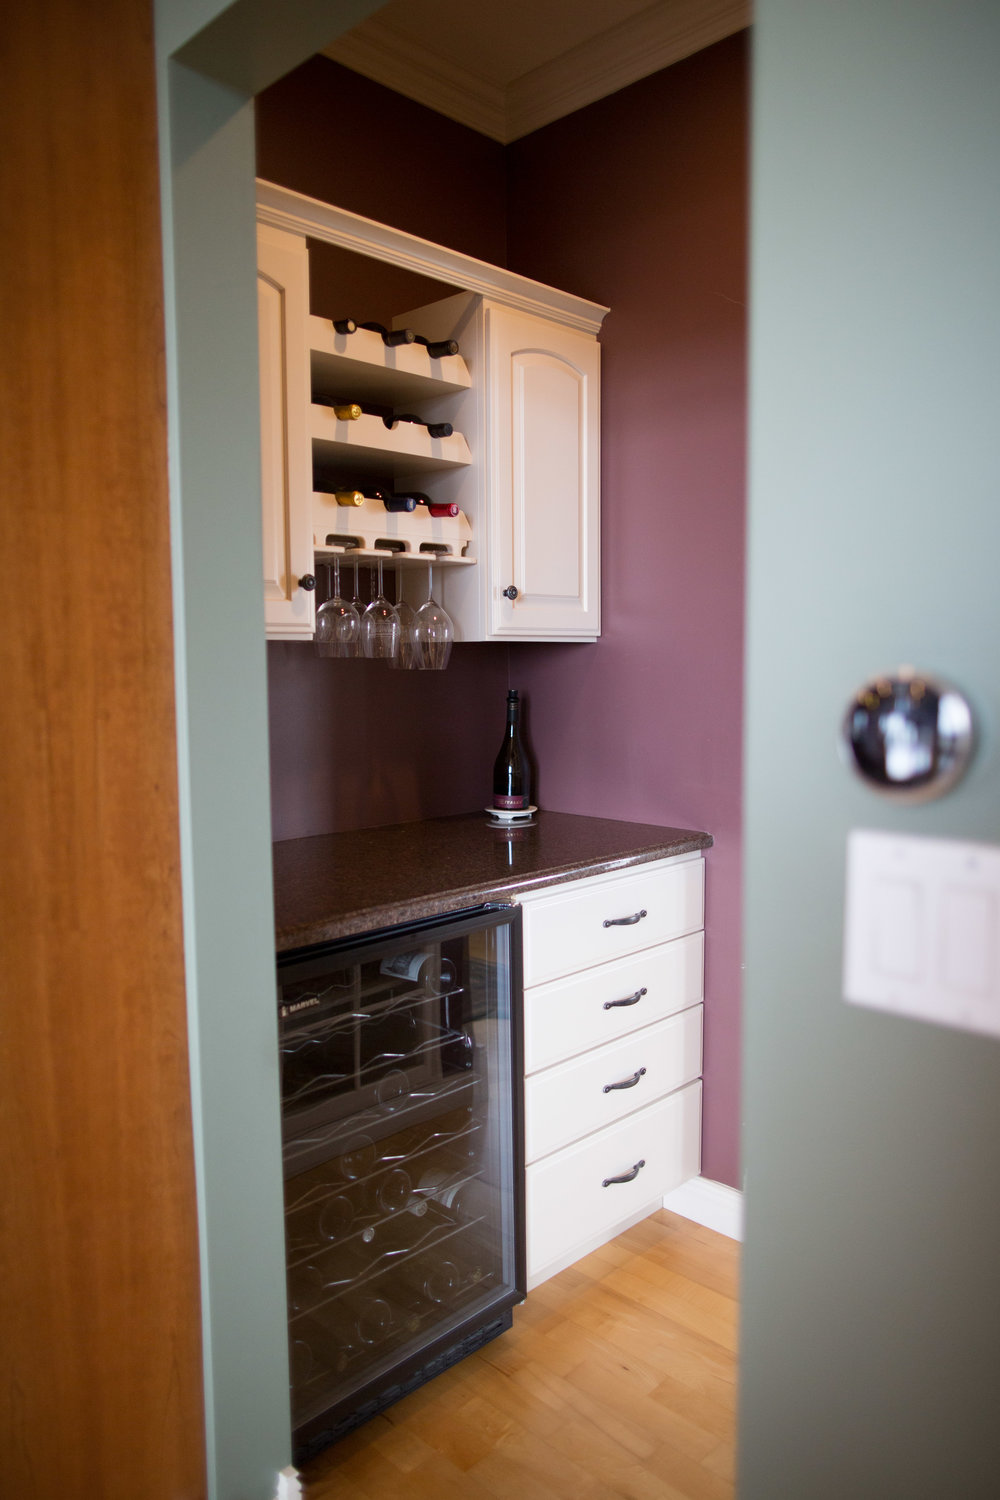 BUTLER PANTRY WITH WINE REFIGERATOR